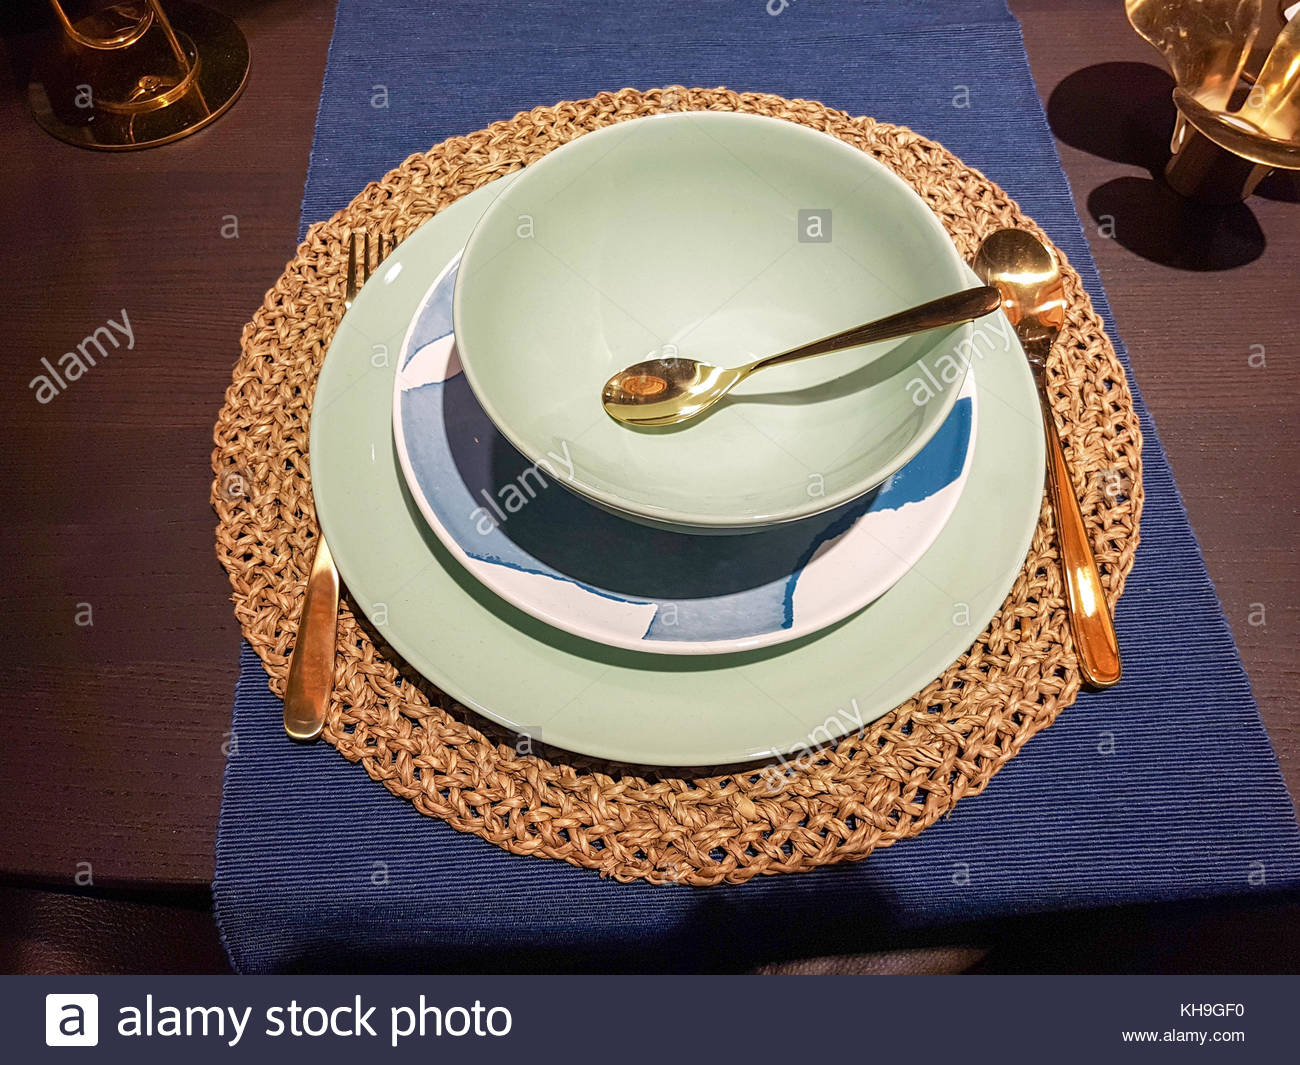 Festive tableware setting - Stock Image & Blue Silver Christmas Dinner Table Stock Photos u0026 Blue Silver ...